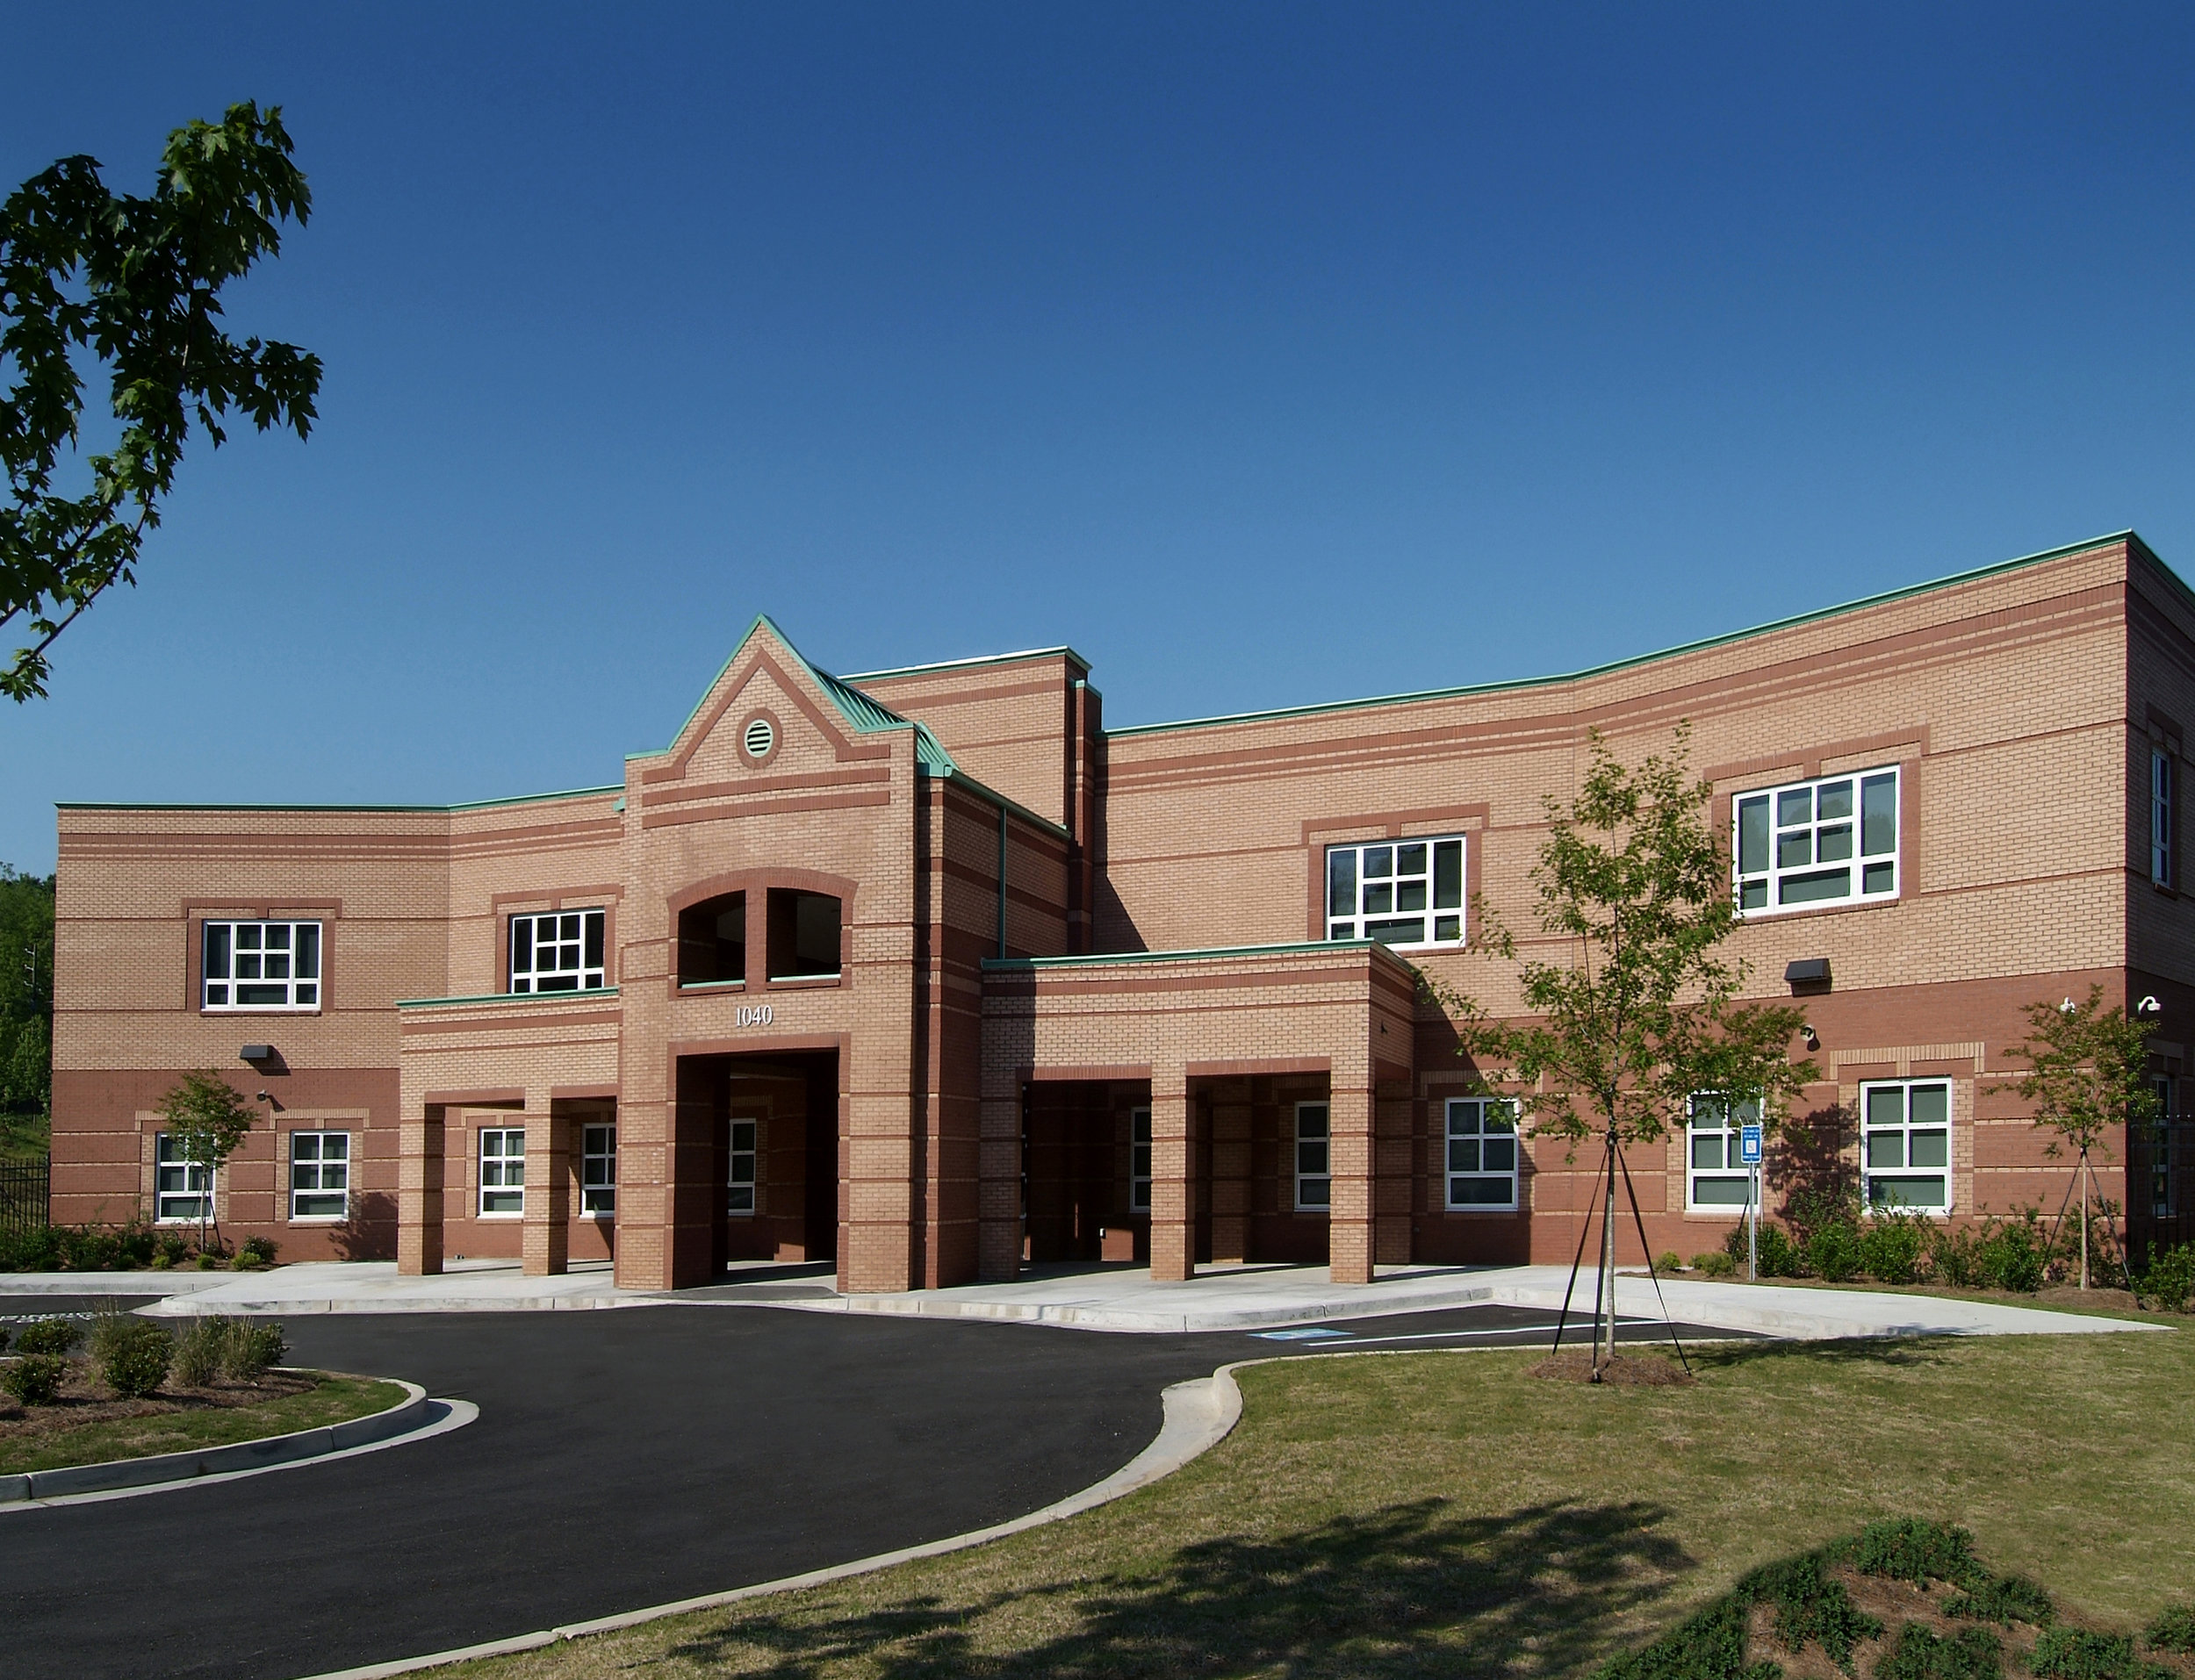 M A Jones Elmentary Schools -  Front Exterior View 1 - no border.jpg